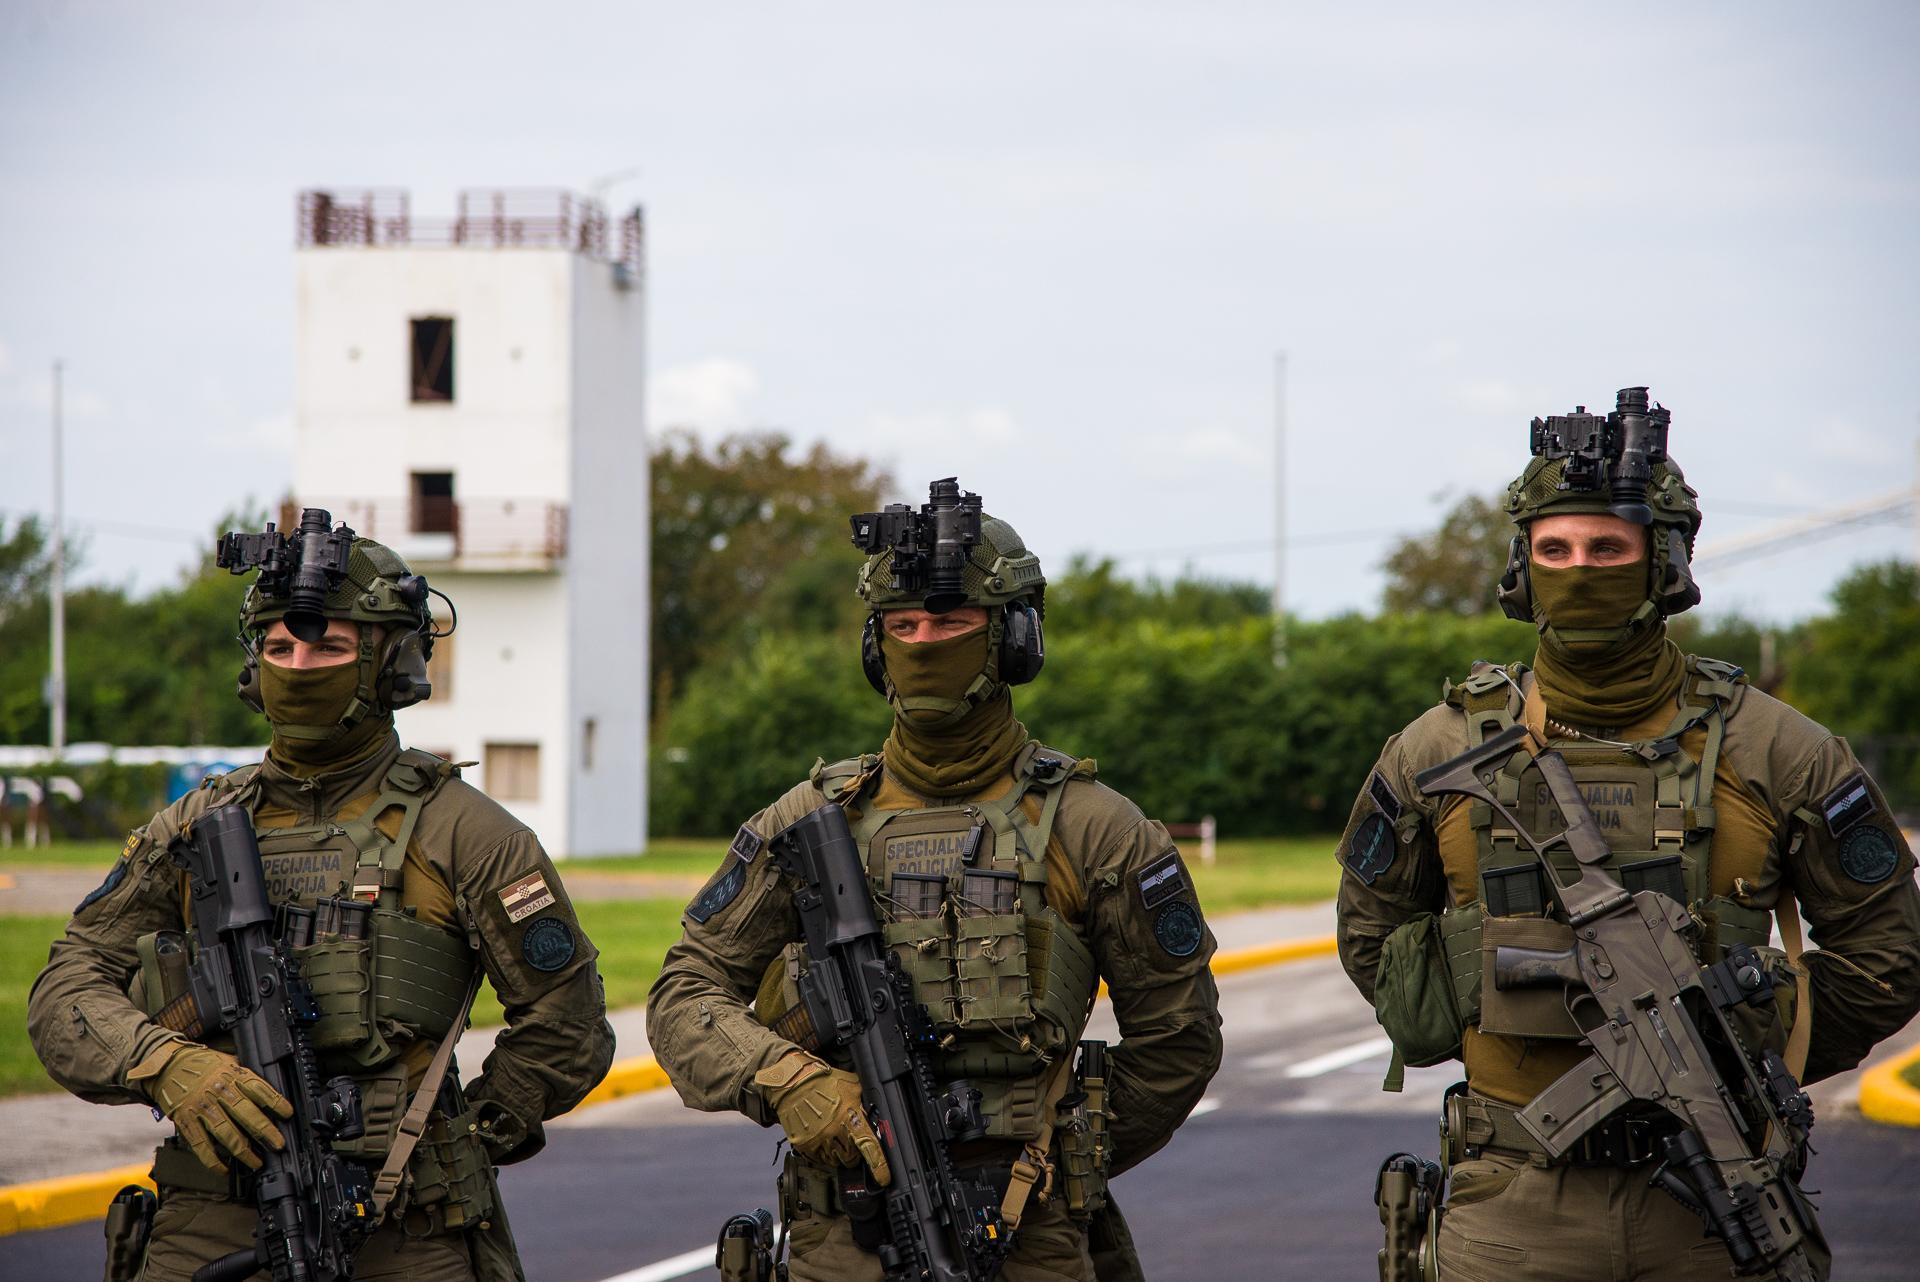 Operators from ATJ Lucko brandishing their weapons during the 30th anniversary of the unit